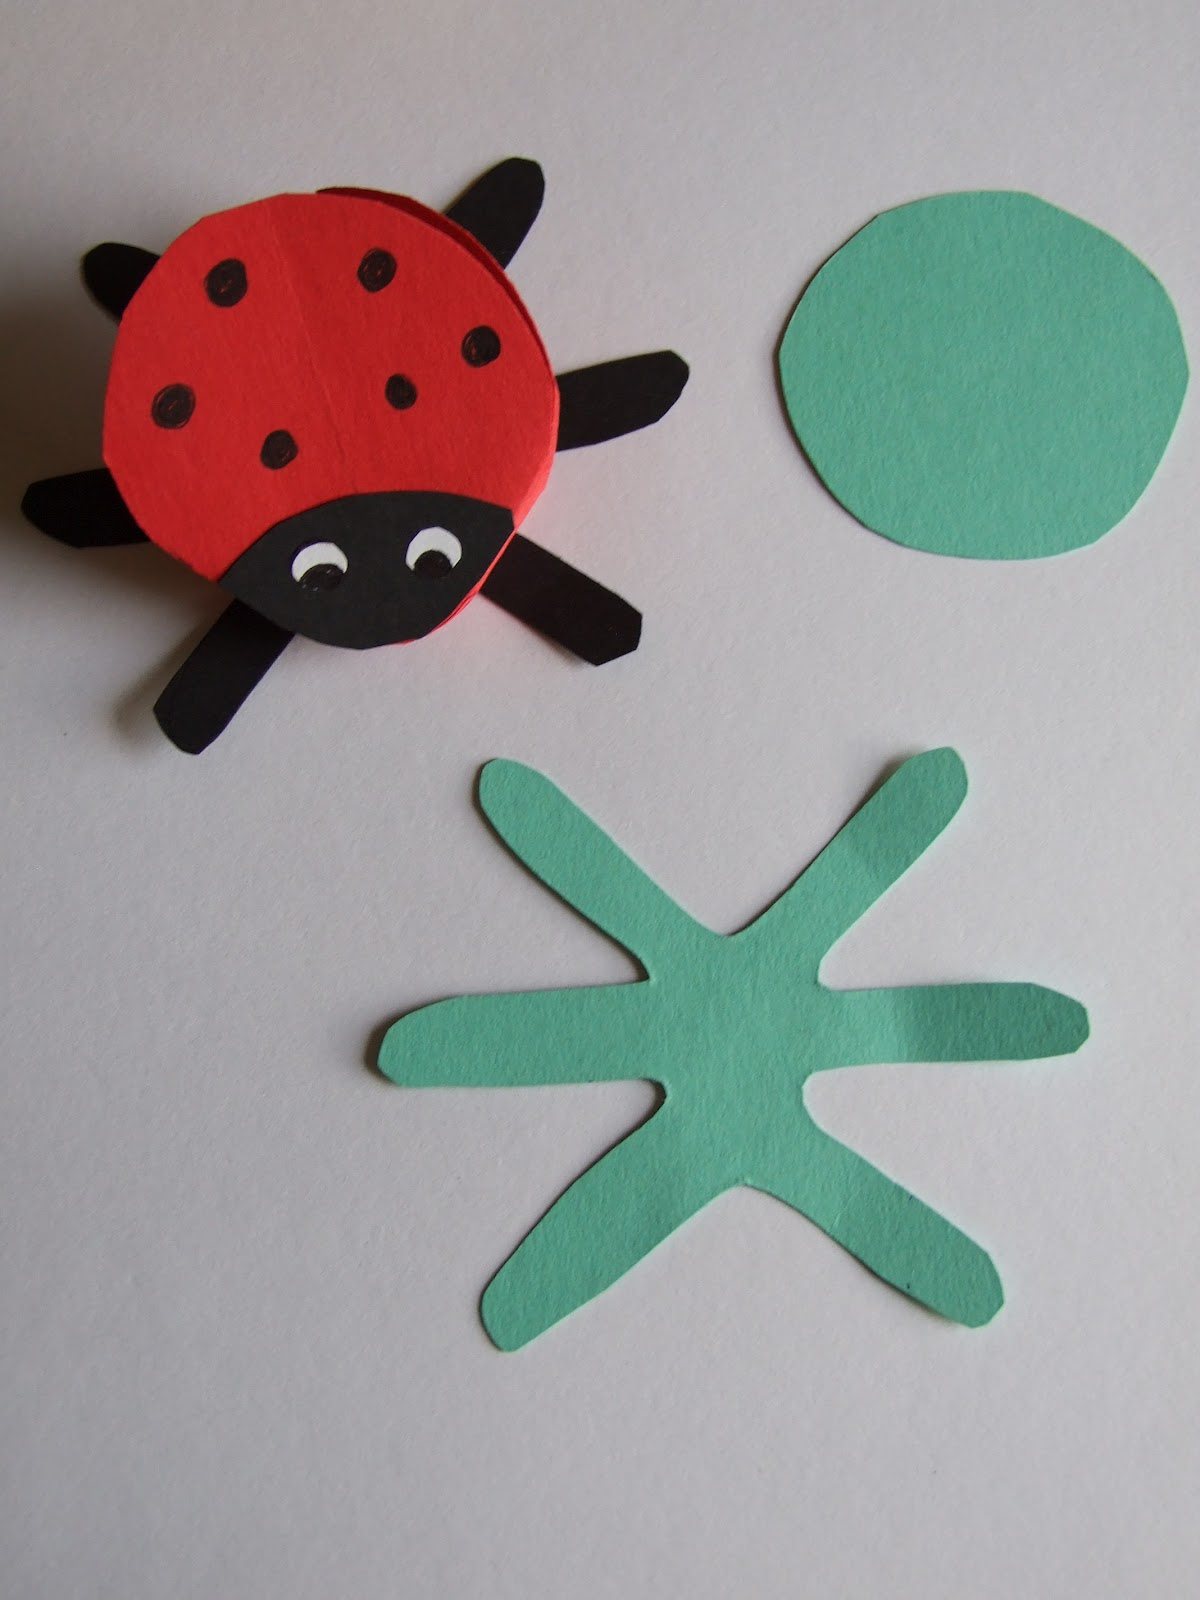 katie claire easy crafts for kids paper ladybug